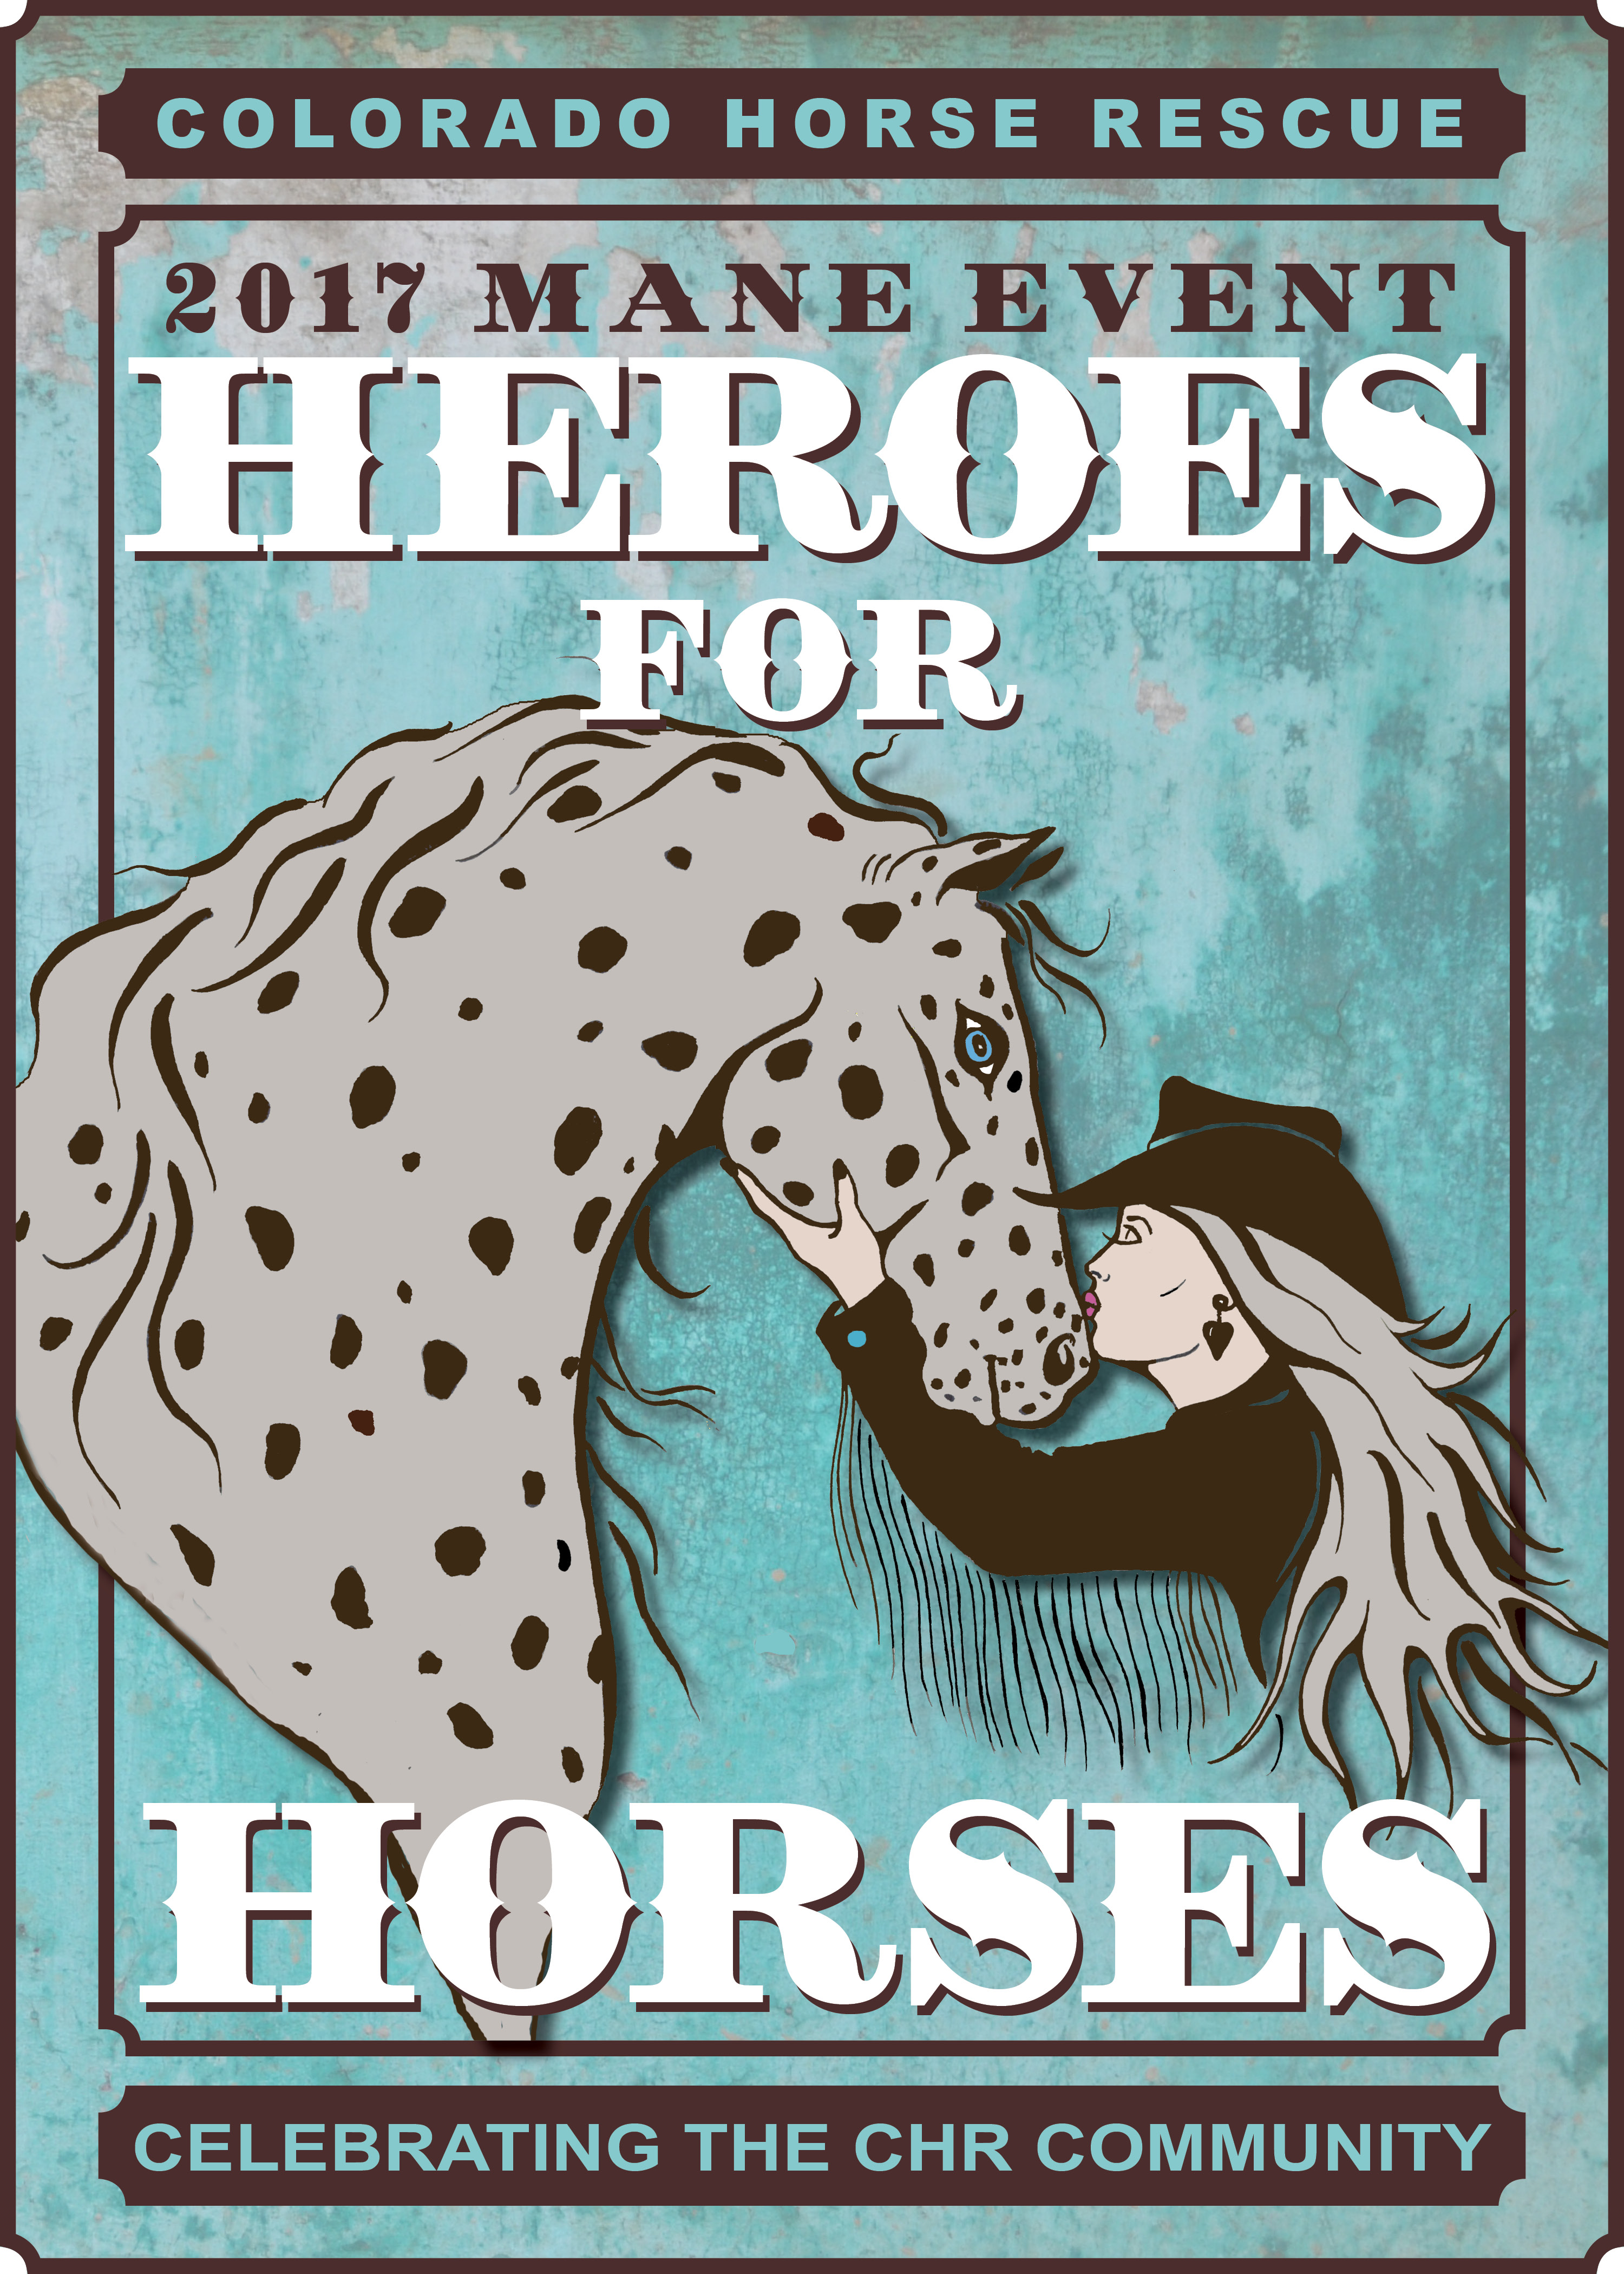 Colorado Horse Rescue Heroes for Horses